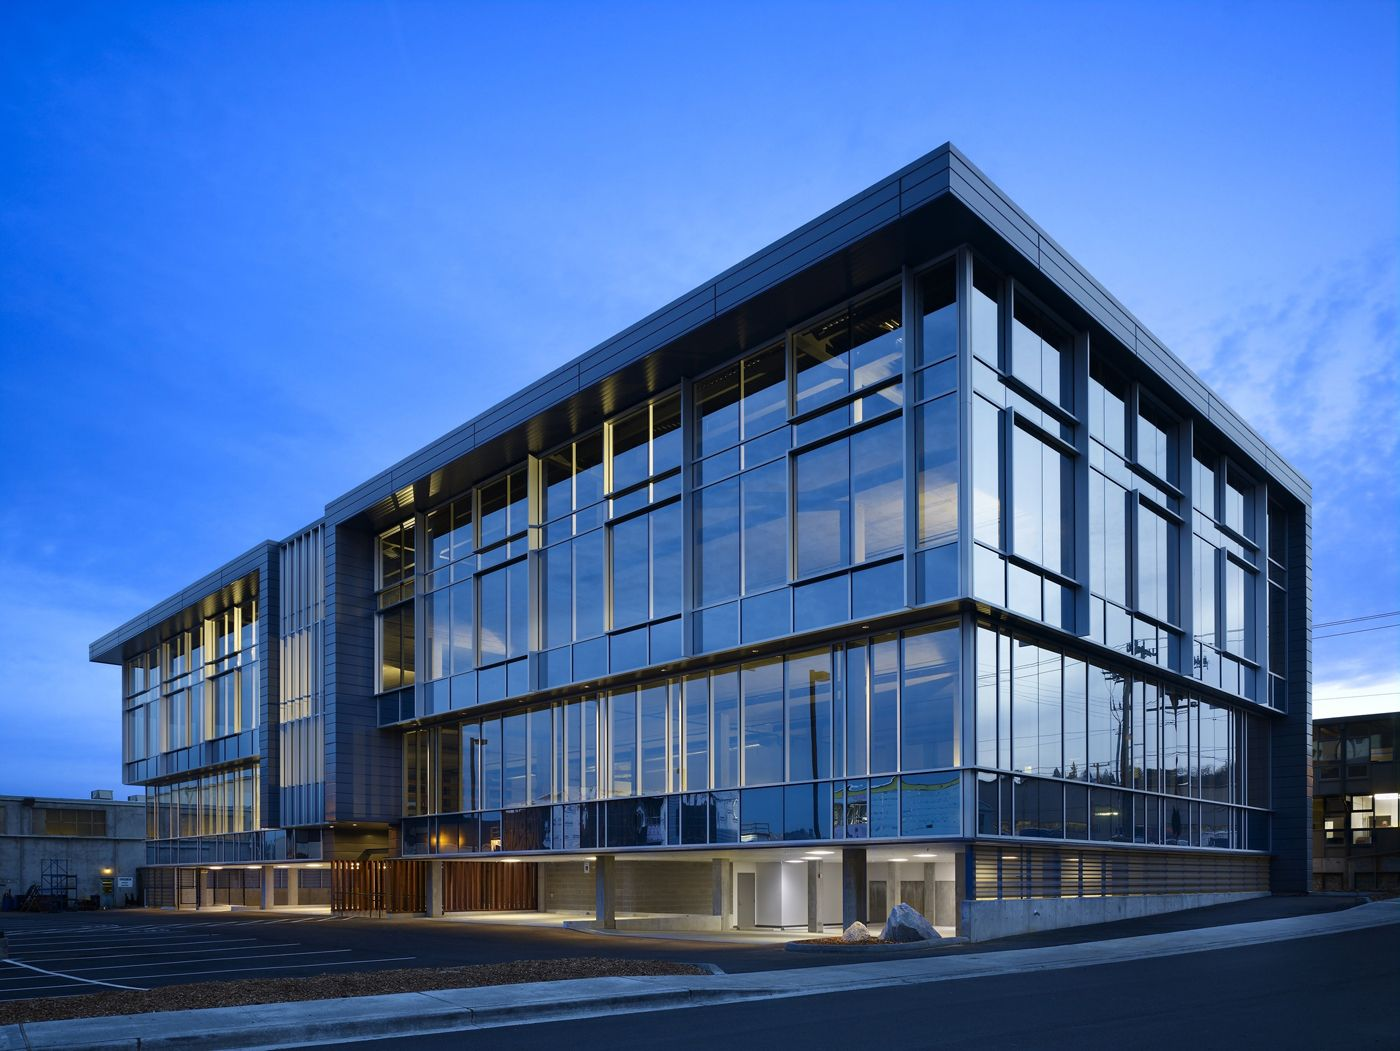 Late small office building design ideas building a small office building